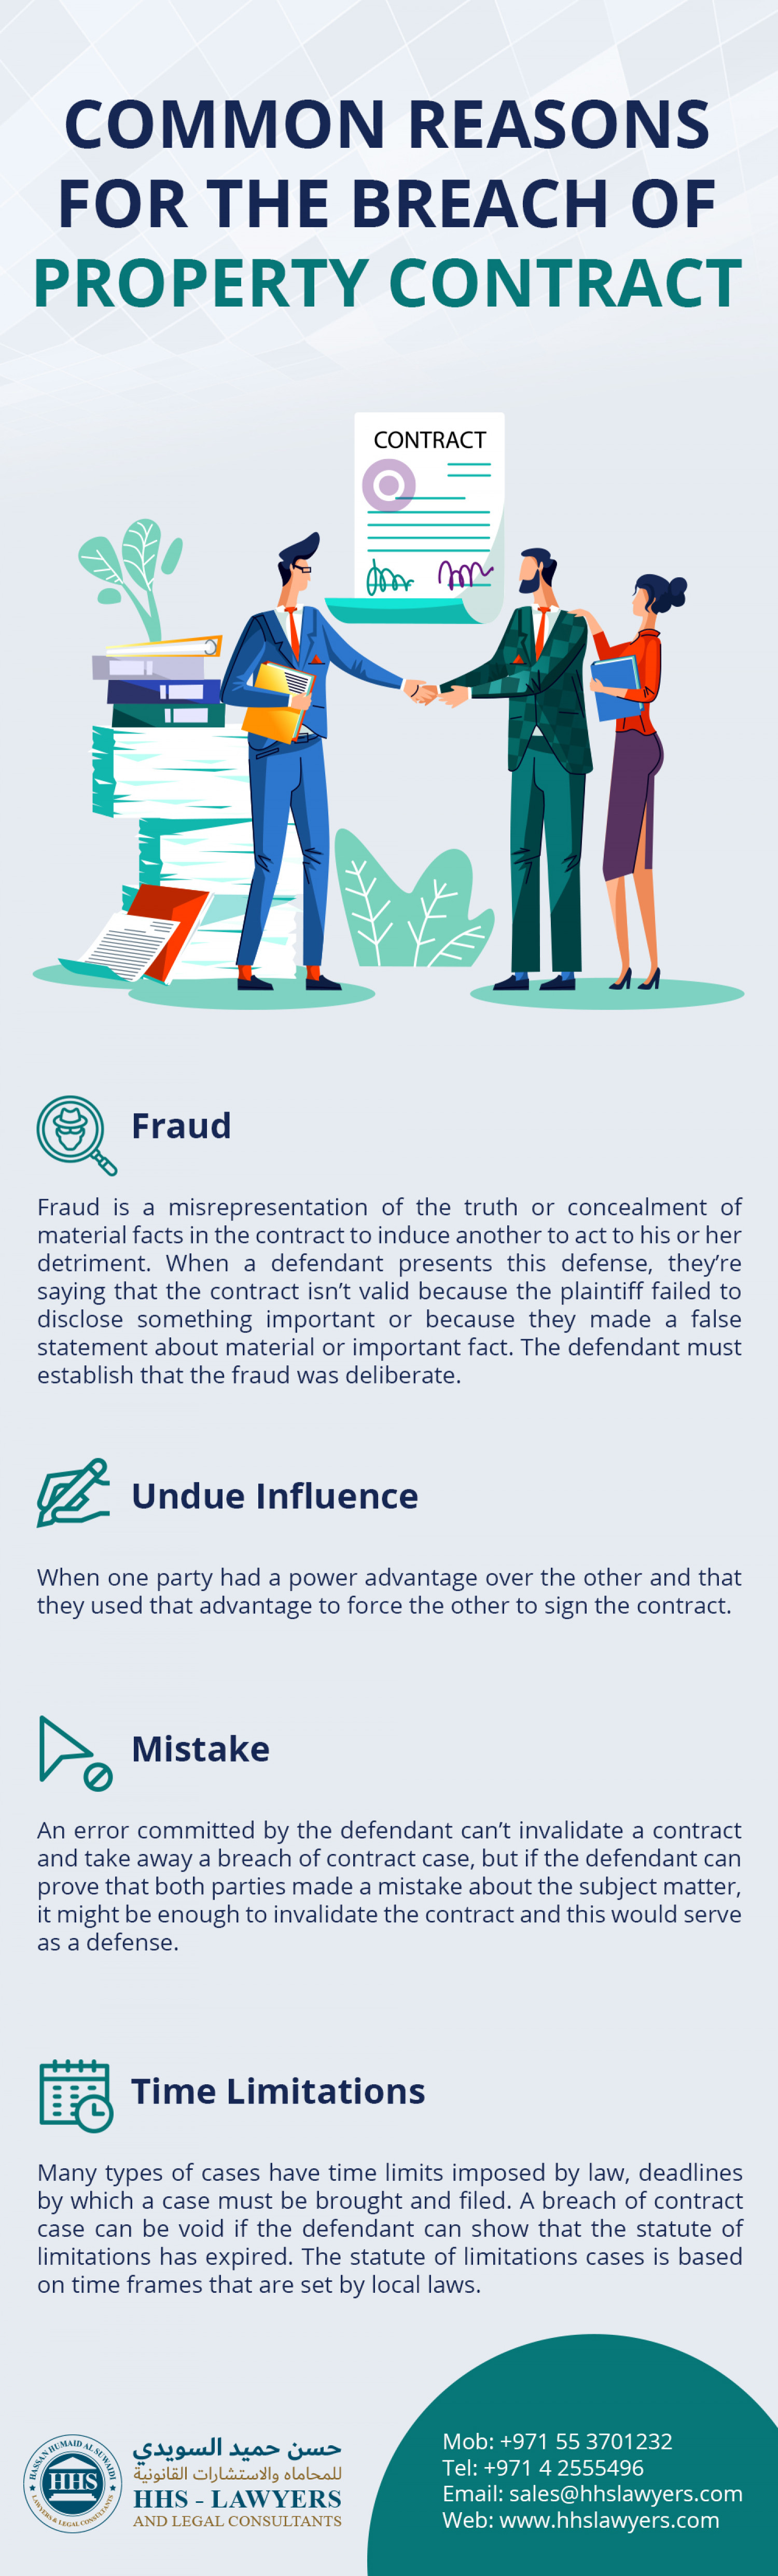 Common Reasons for the Breach of Property Contract Infographic